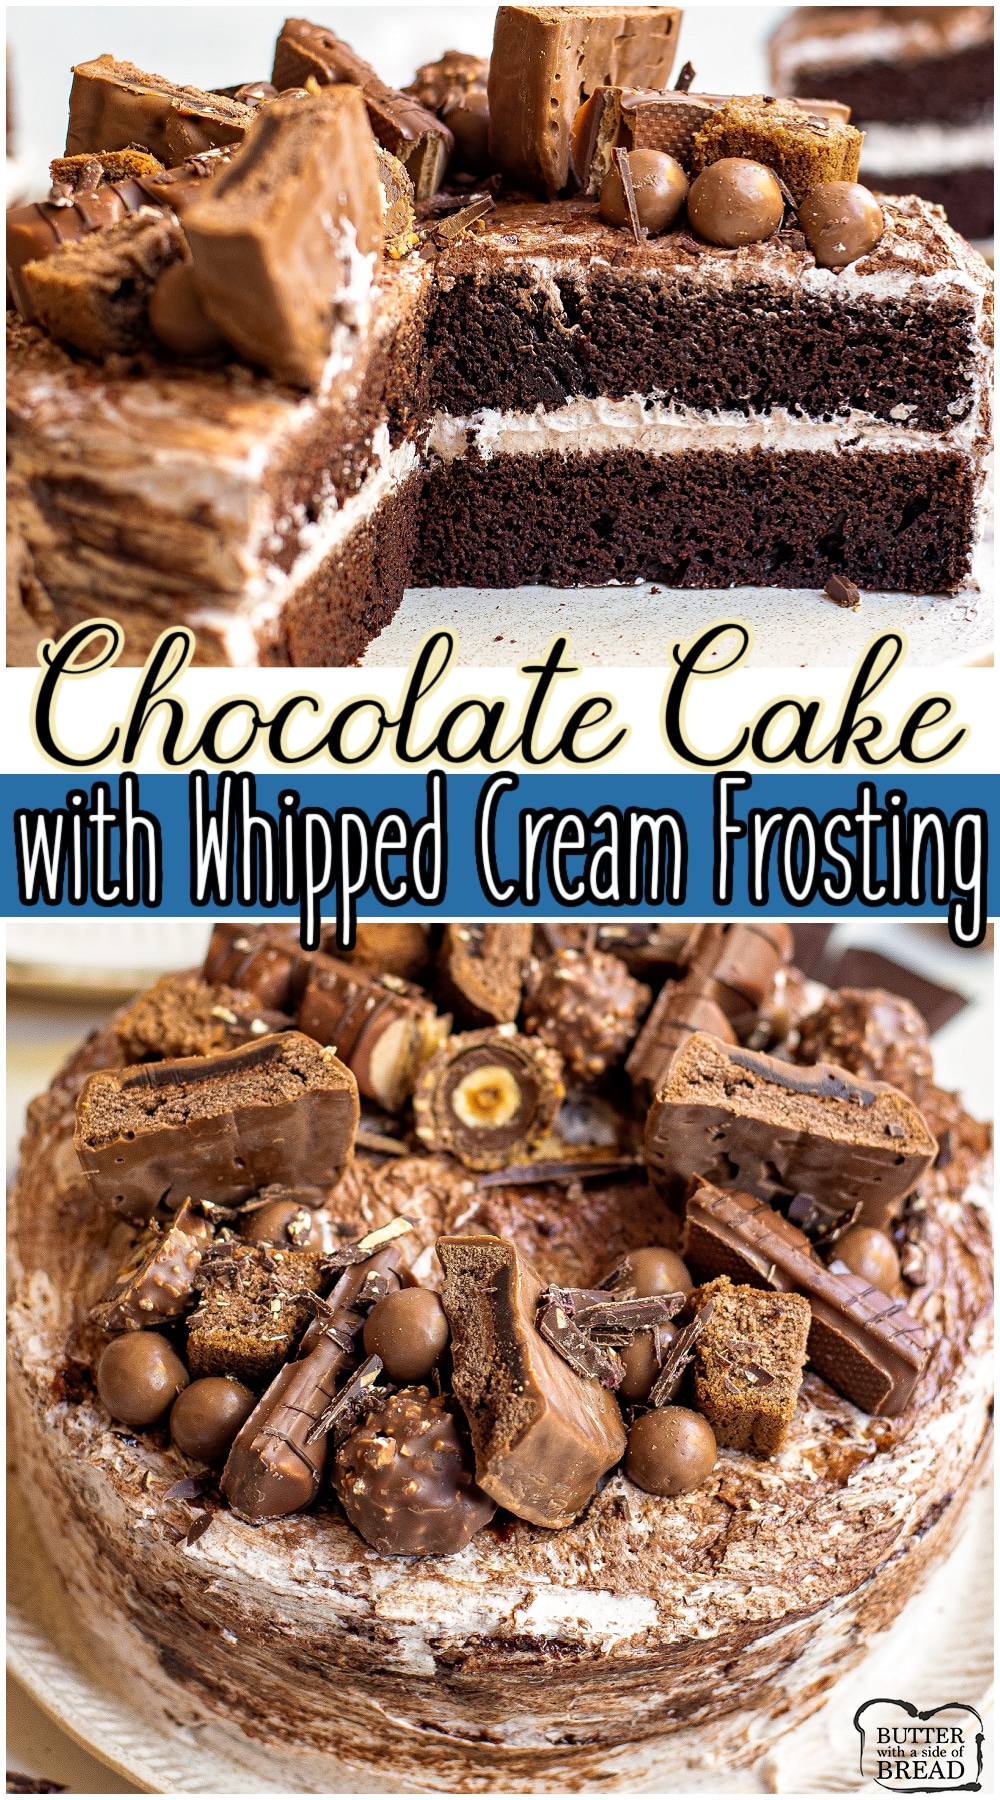 Chocolate cake with whipped cream frosting made with homemade cake with a tender crumb, then topped with  whipped cream frosting & tons of chocolates! Indulgent chocolate cake perfect for chocolate lovers! #cake #chocolate #whippedcream #baking #homemade #easyrecipe from BUTTER WITH A SIDE OF BREAD